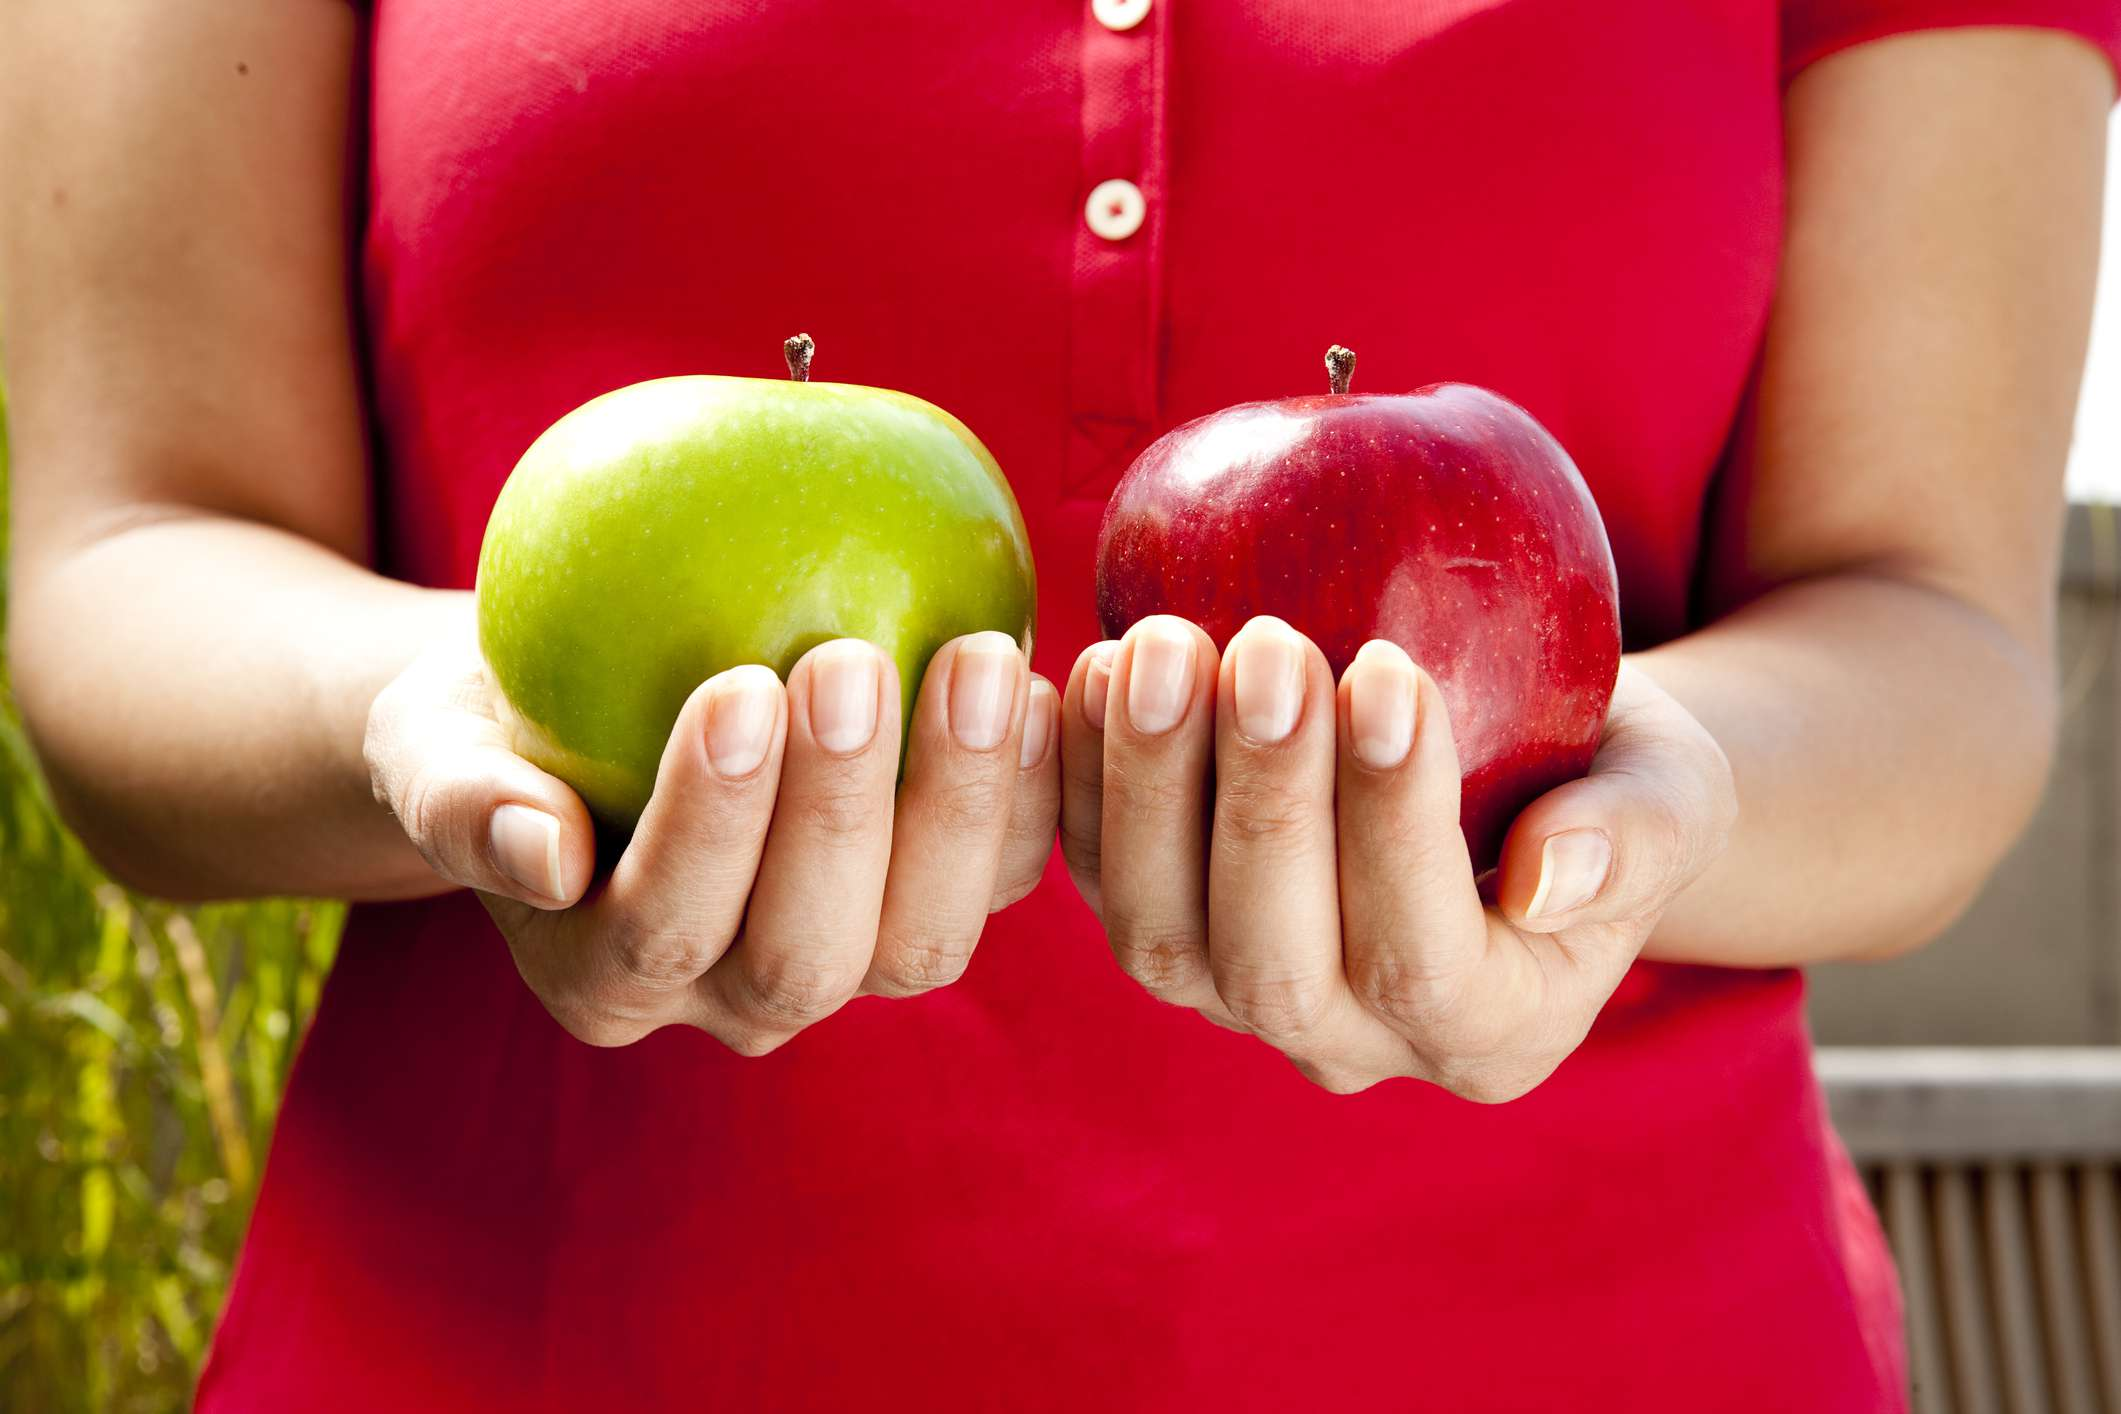 person holding green and red apples